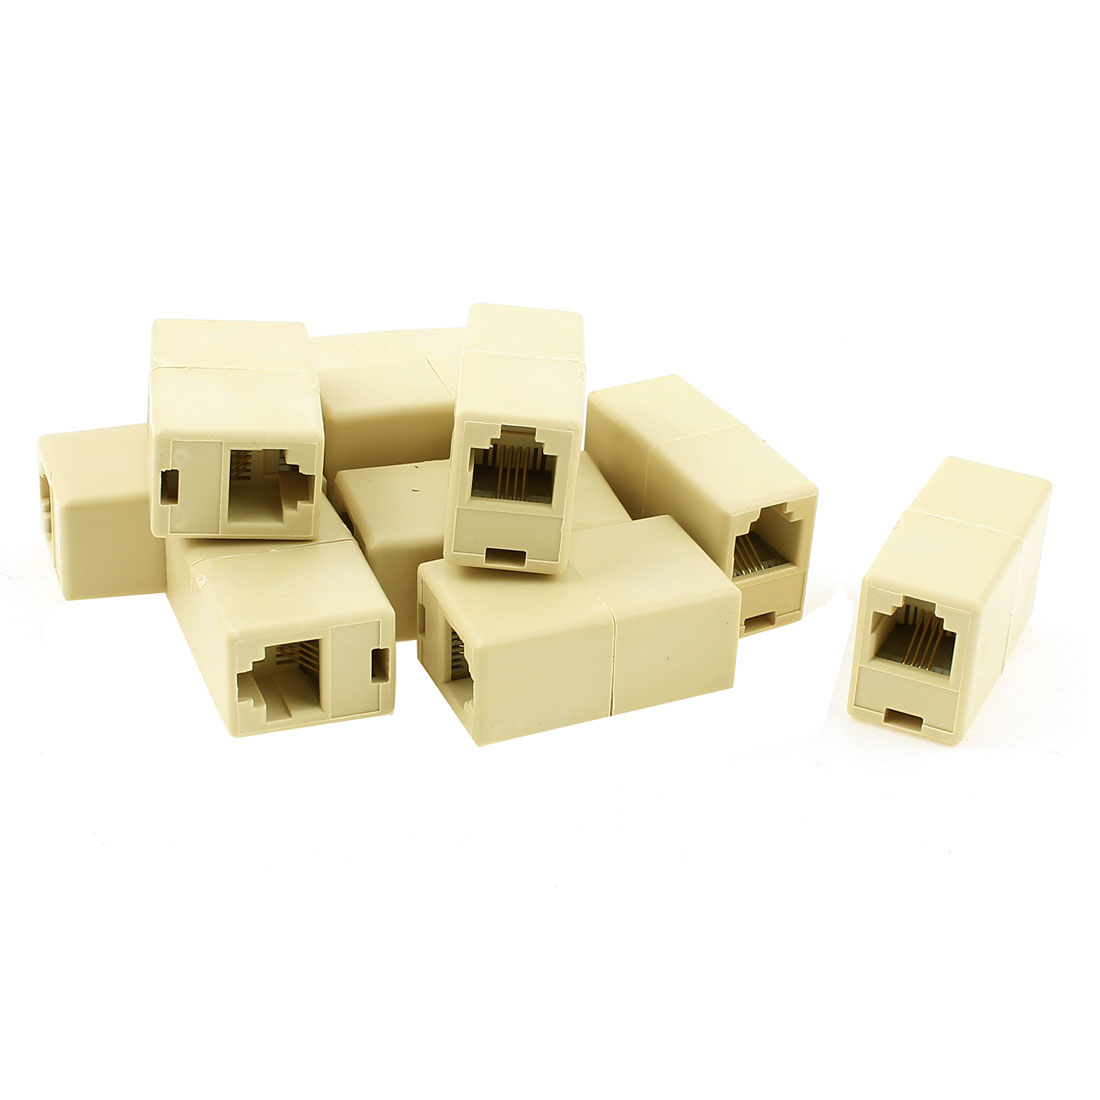 10pcs Plastic Shell RJ11 8P4C Female to Female Phone Cable Extension Line Network Connector Adapter Jack